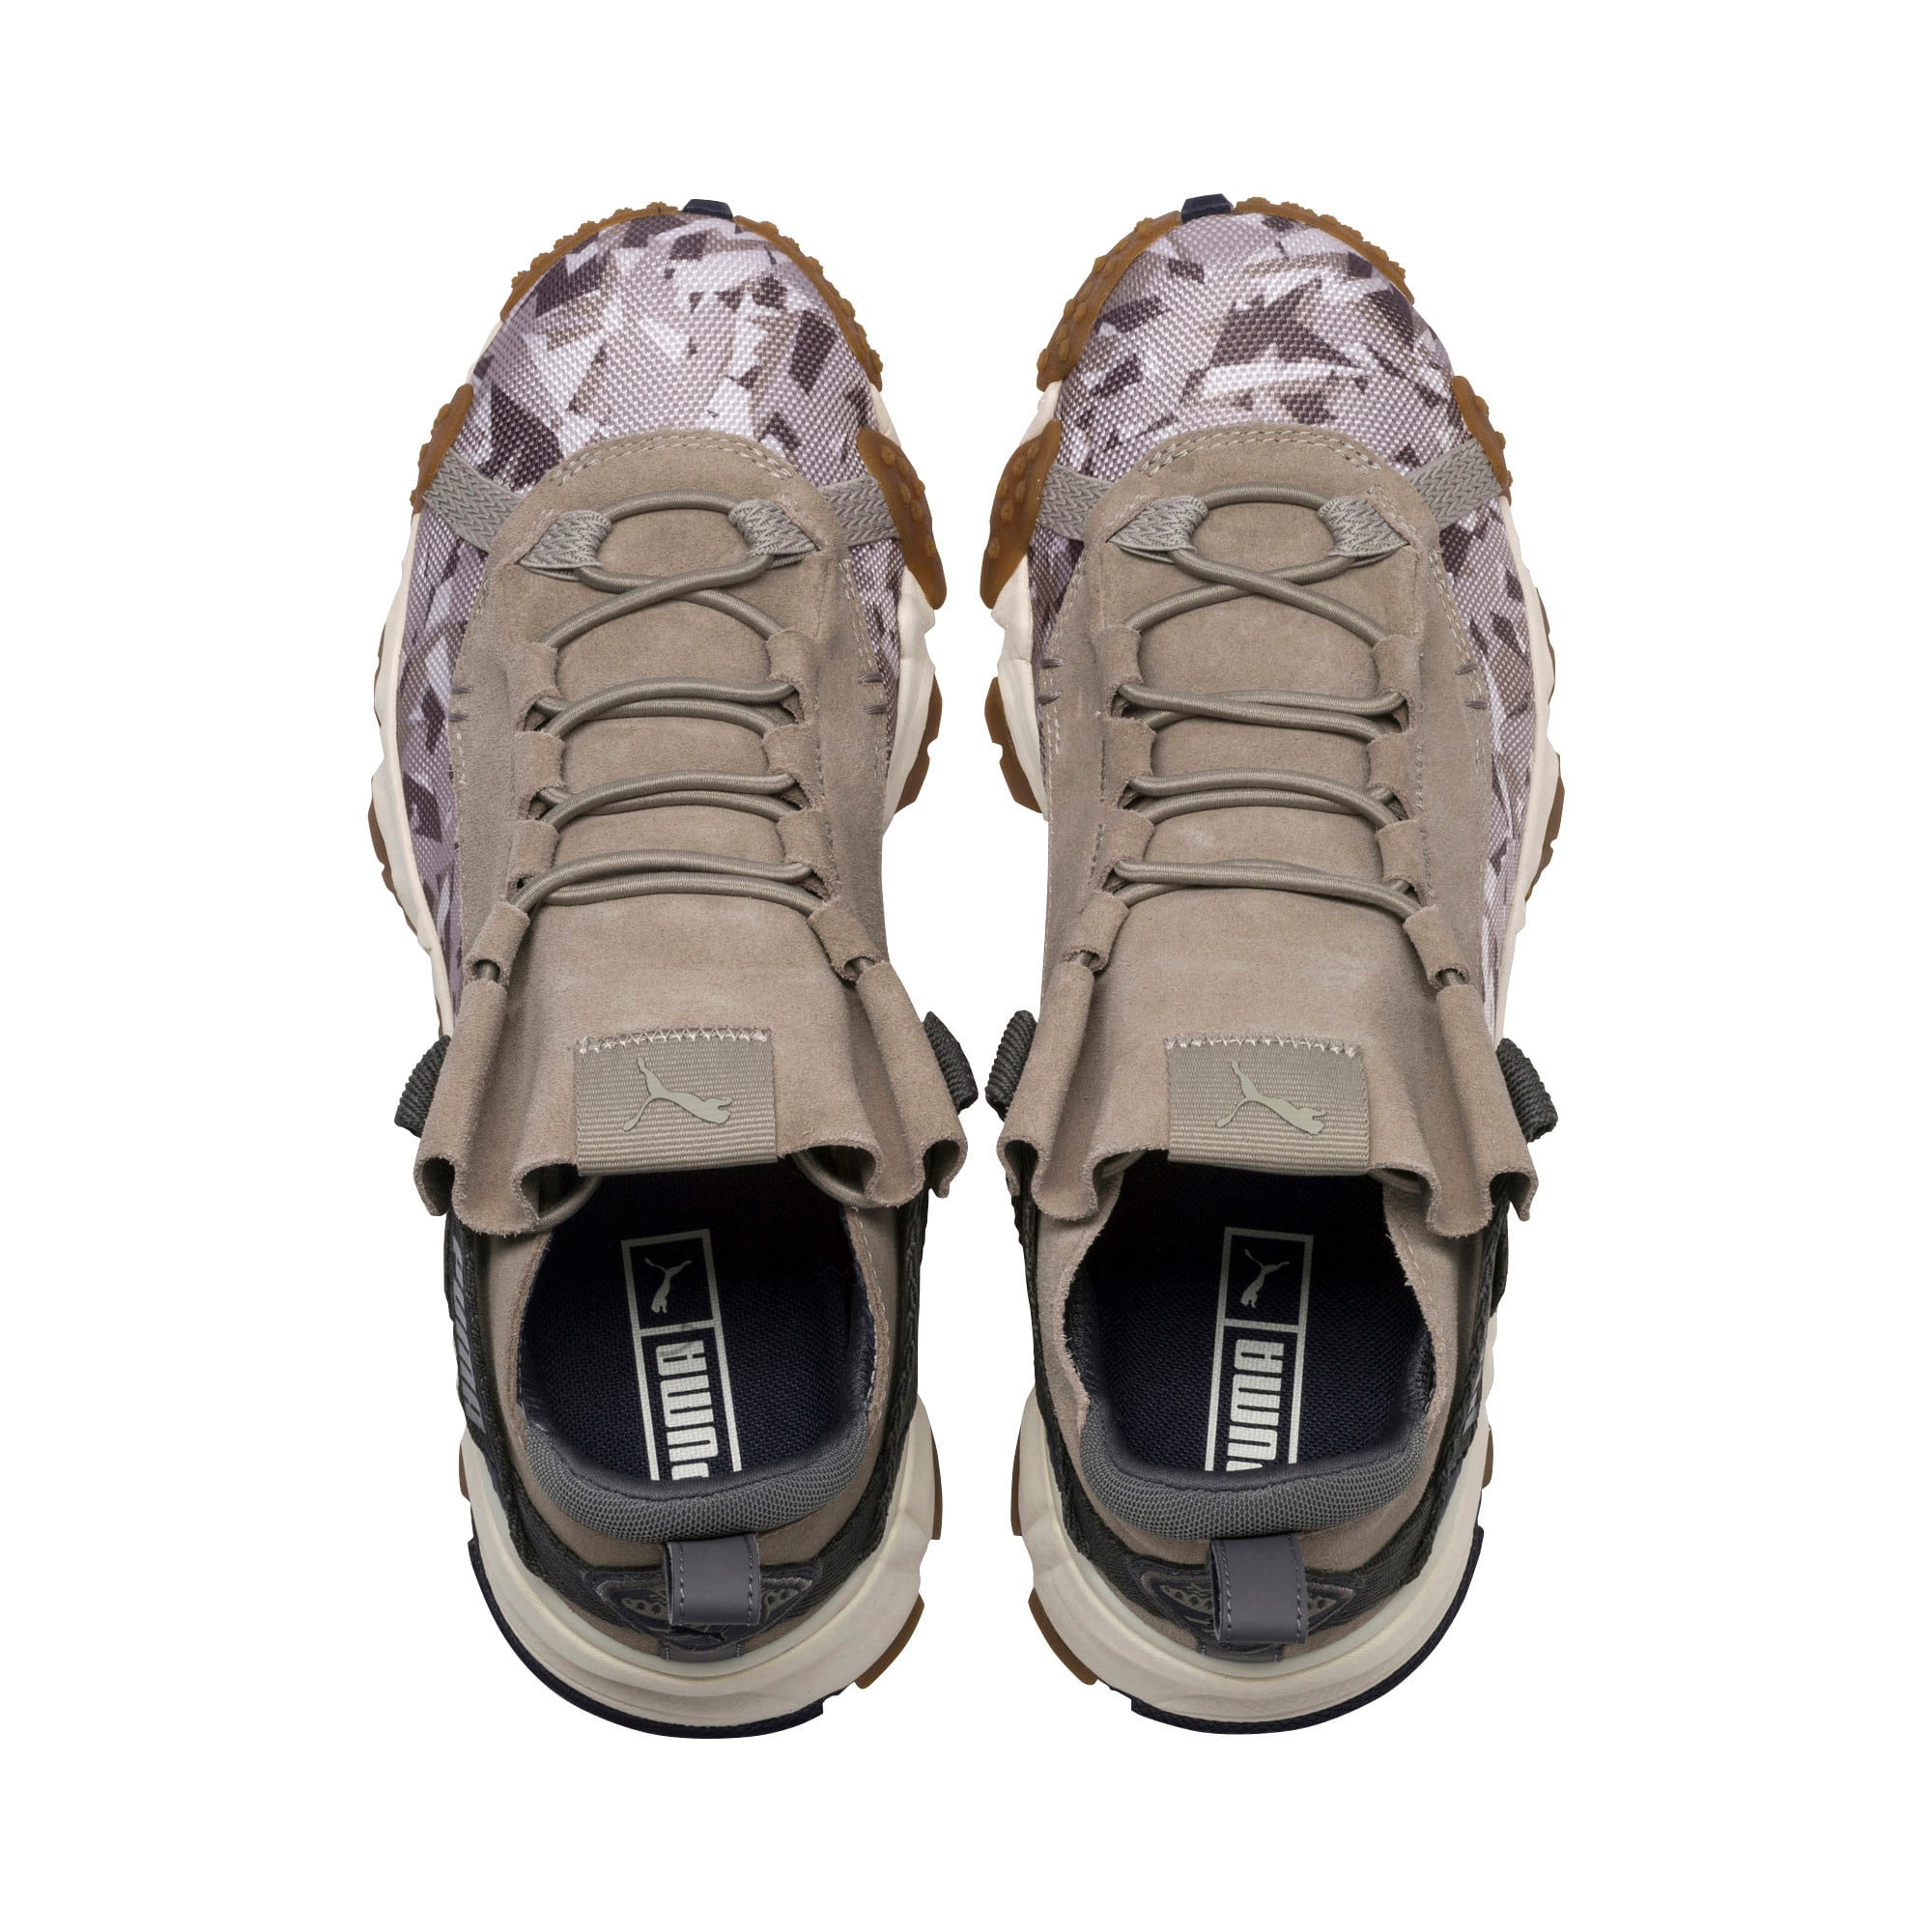 Thumbnail 6 of Trailfox Camo Trainers, Elephant Skin-Whisper White, medium-IND